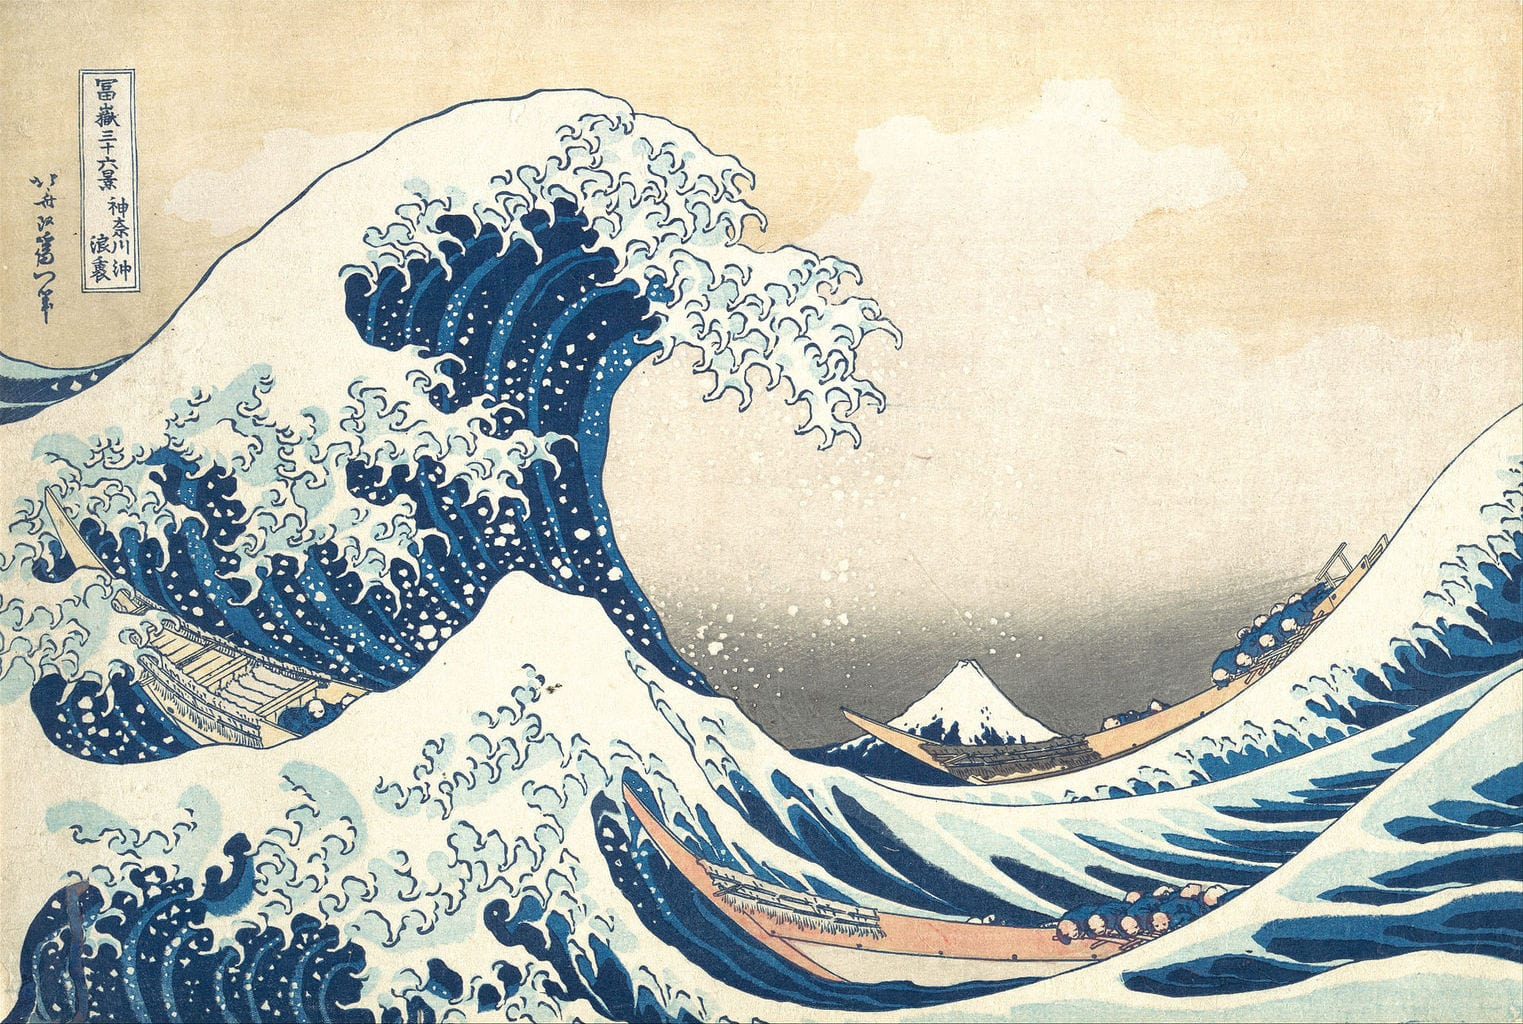 The Great Wave follows the principles of the Golden Ratio